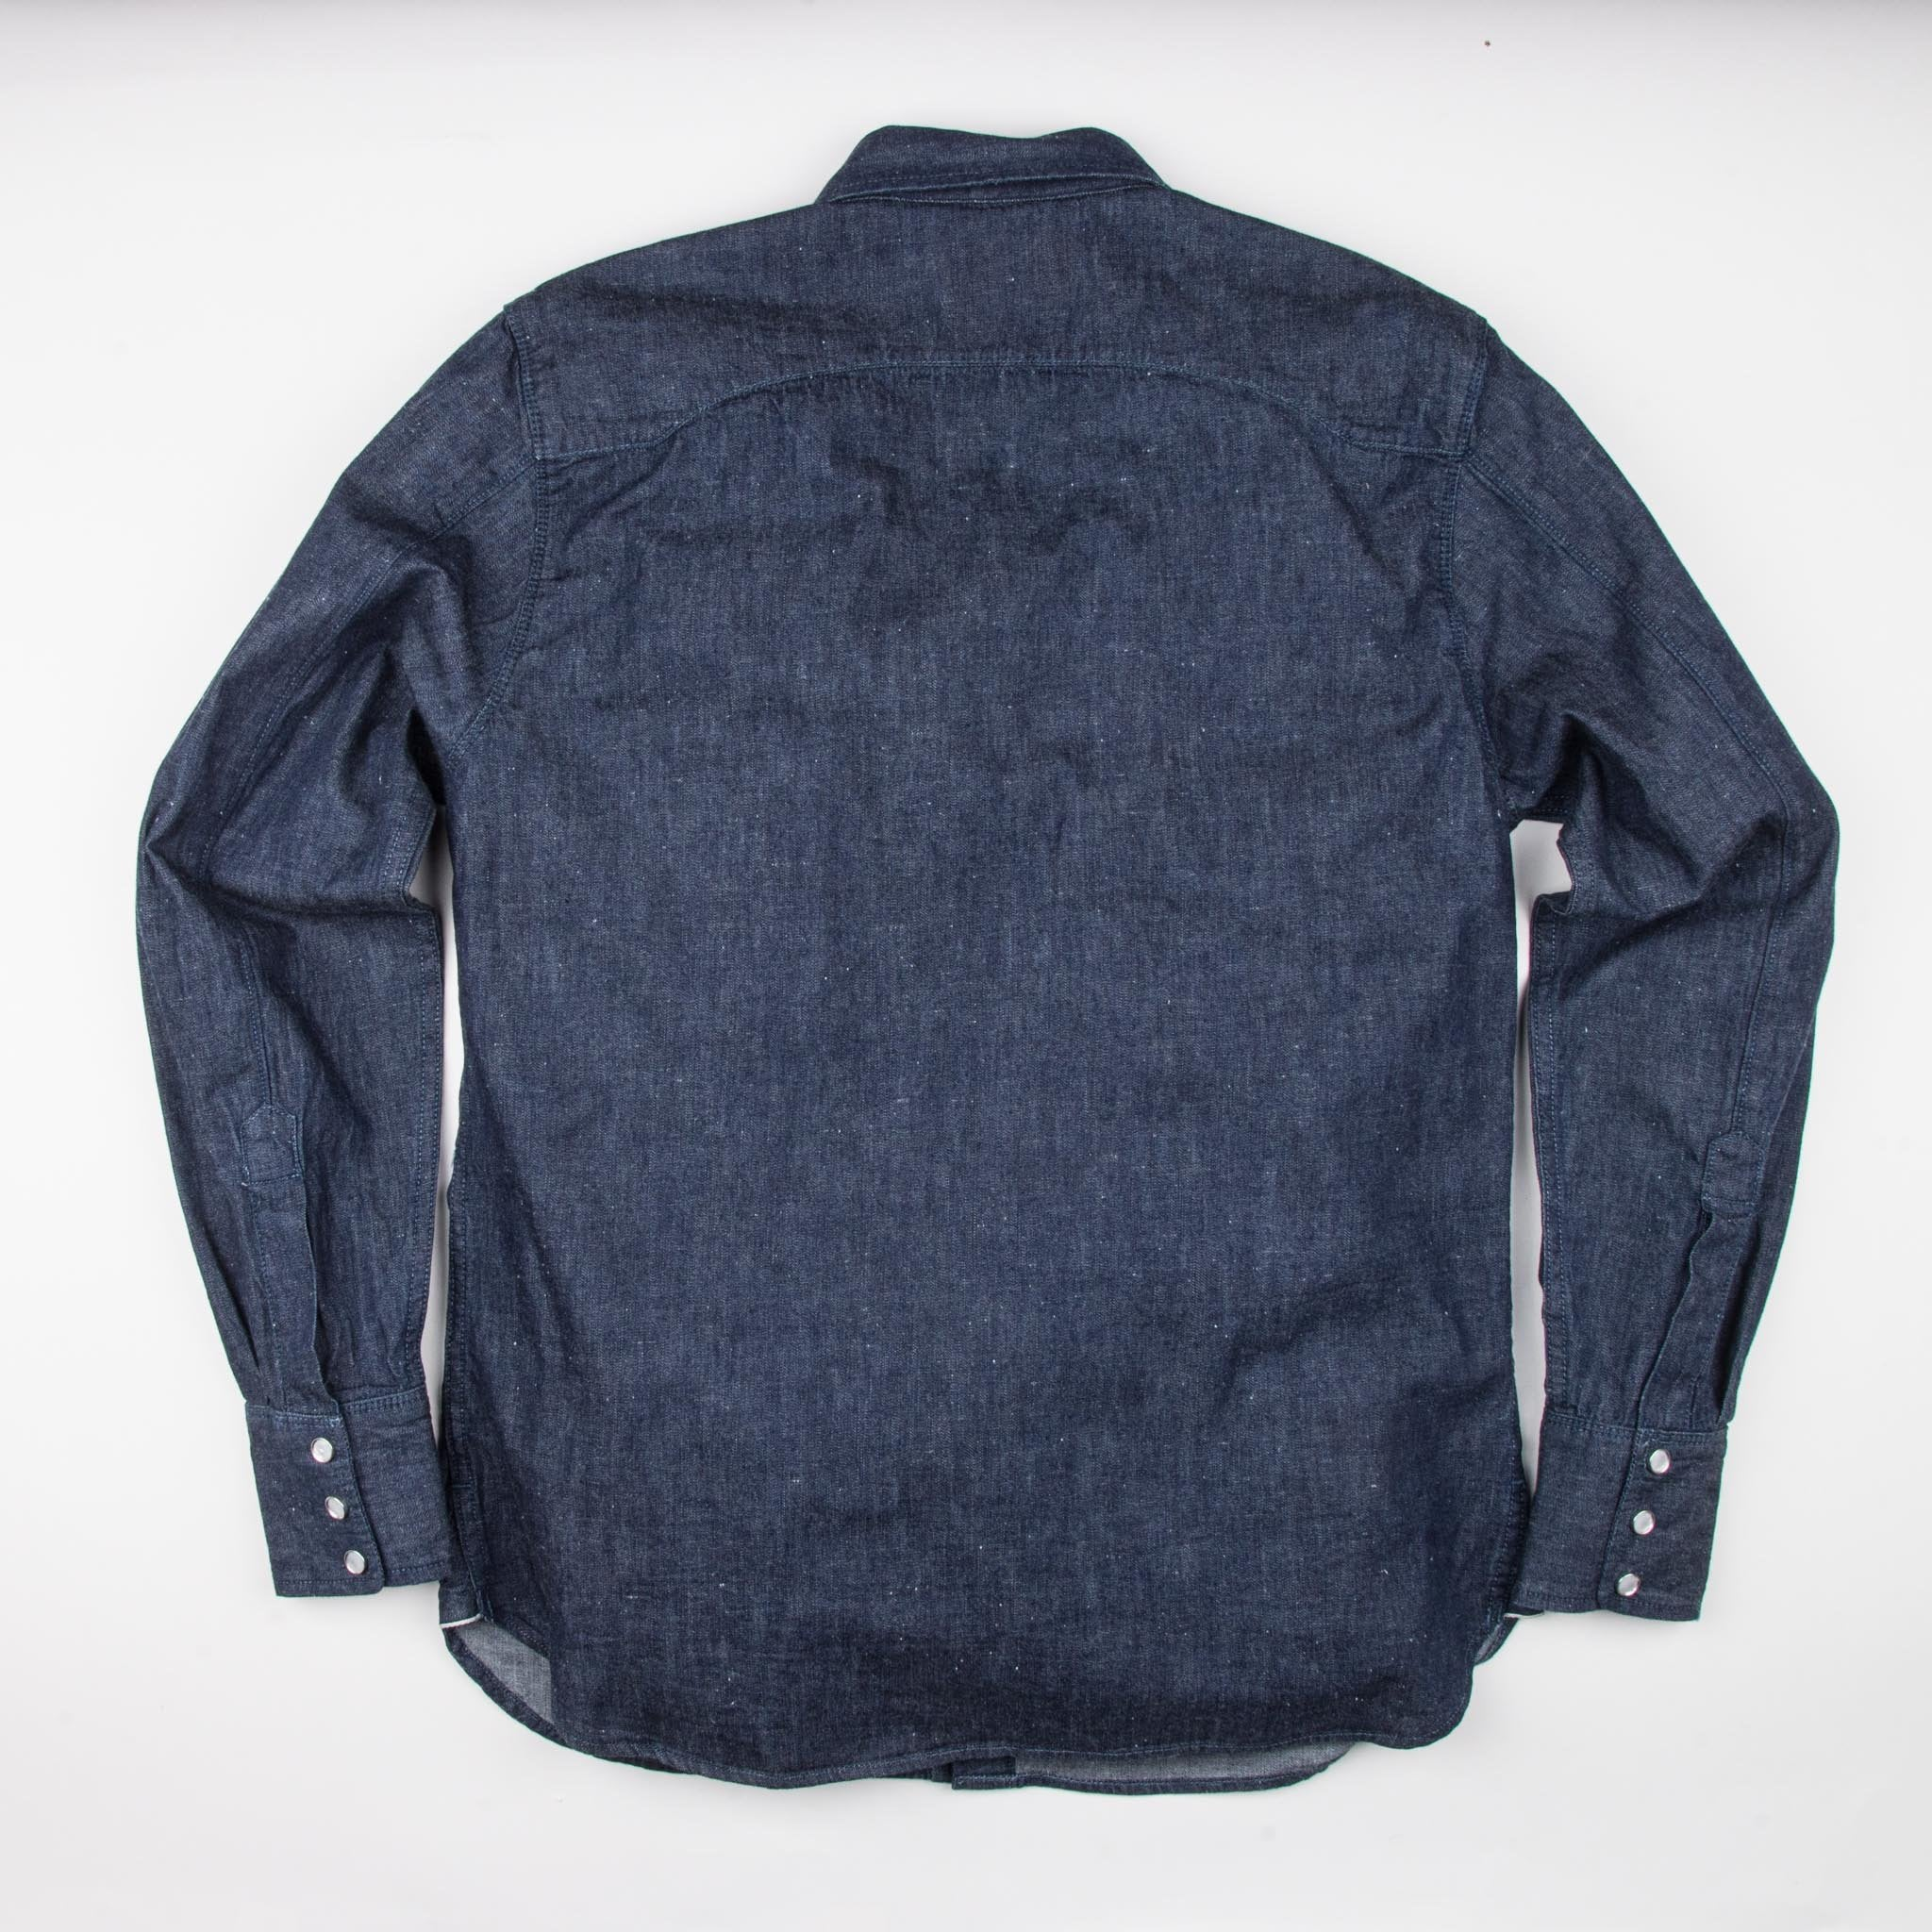 FREENOTE - CALICO DENIM RINSED - The Populess Company